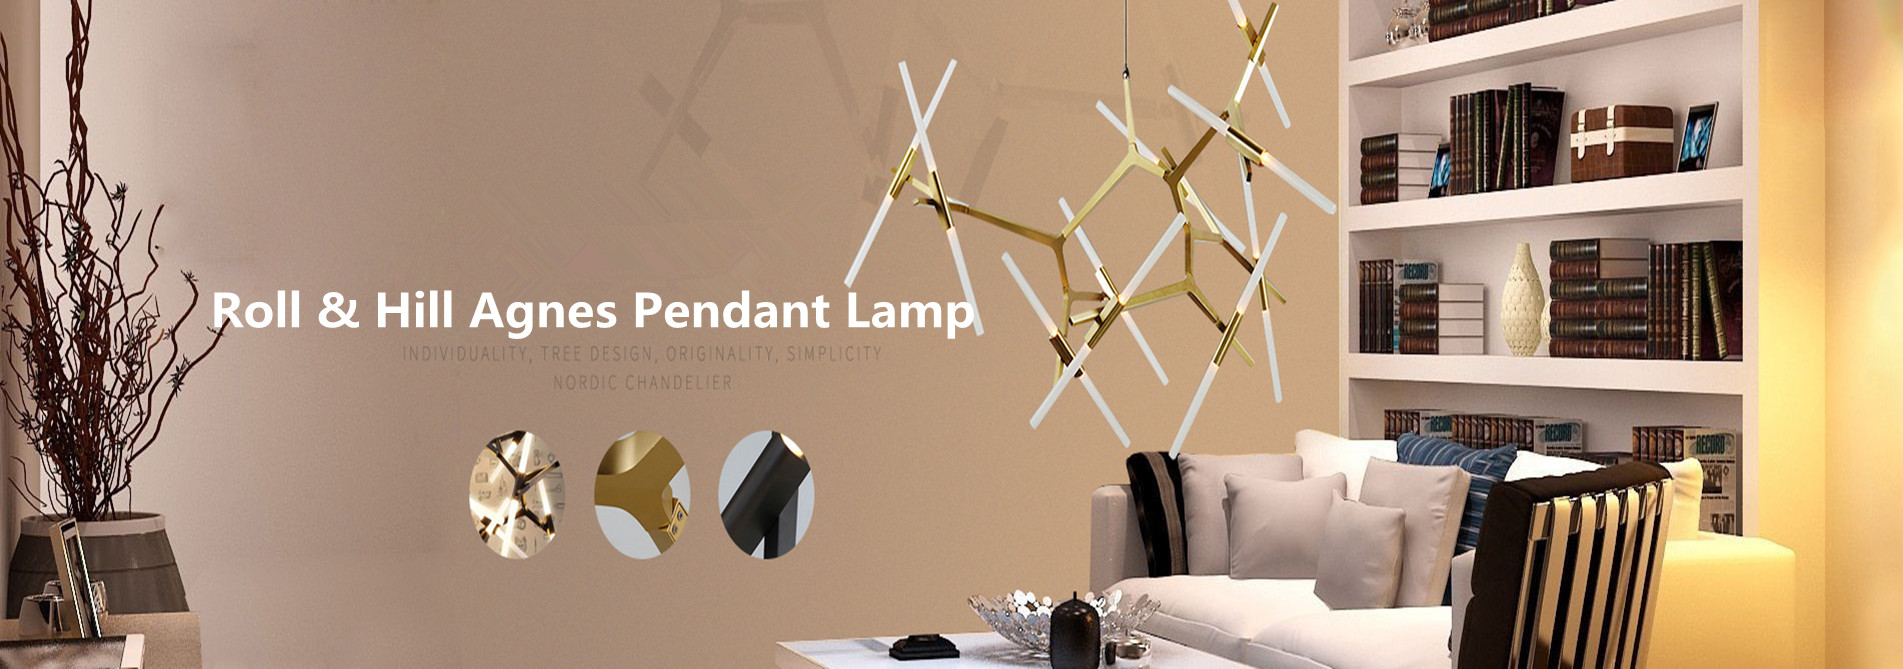 Roll & Hill Agnes Pendant Lamp